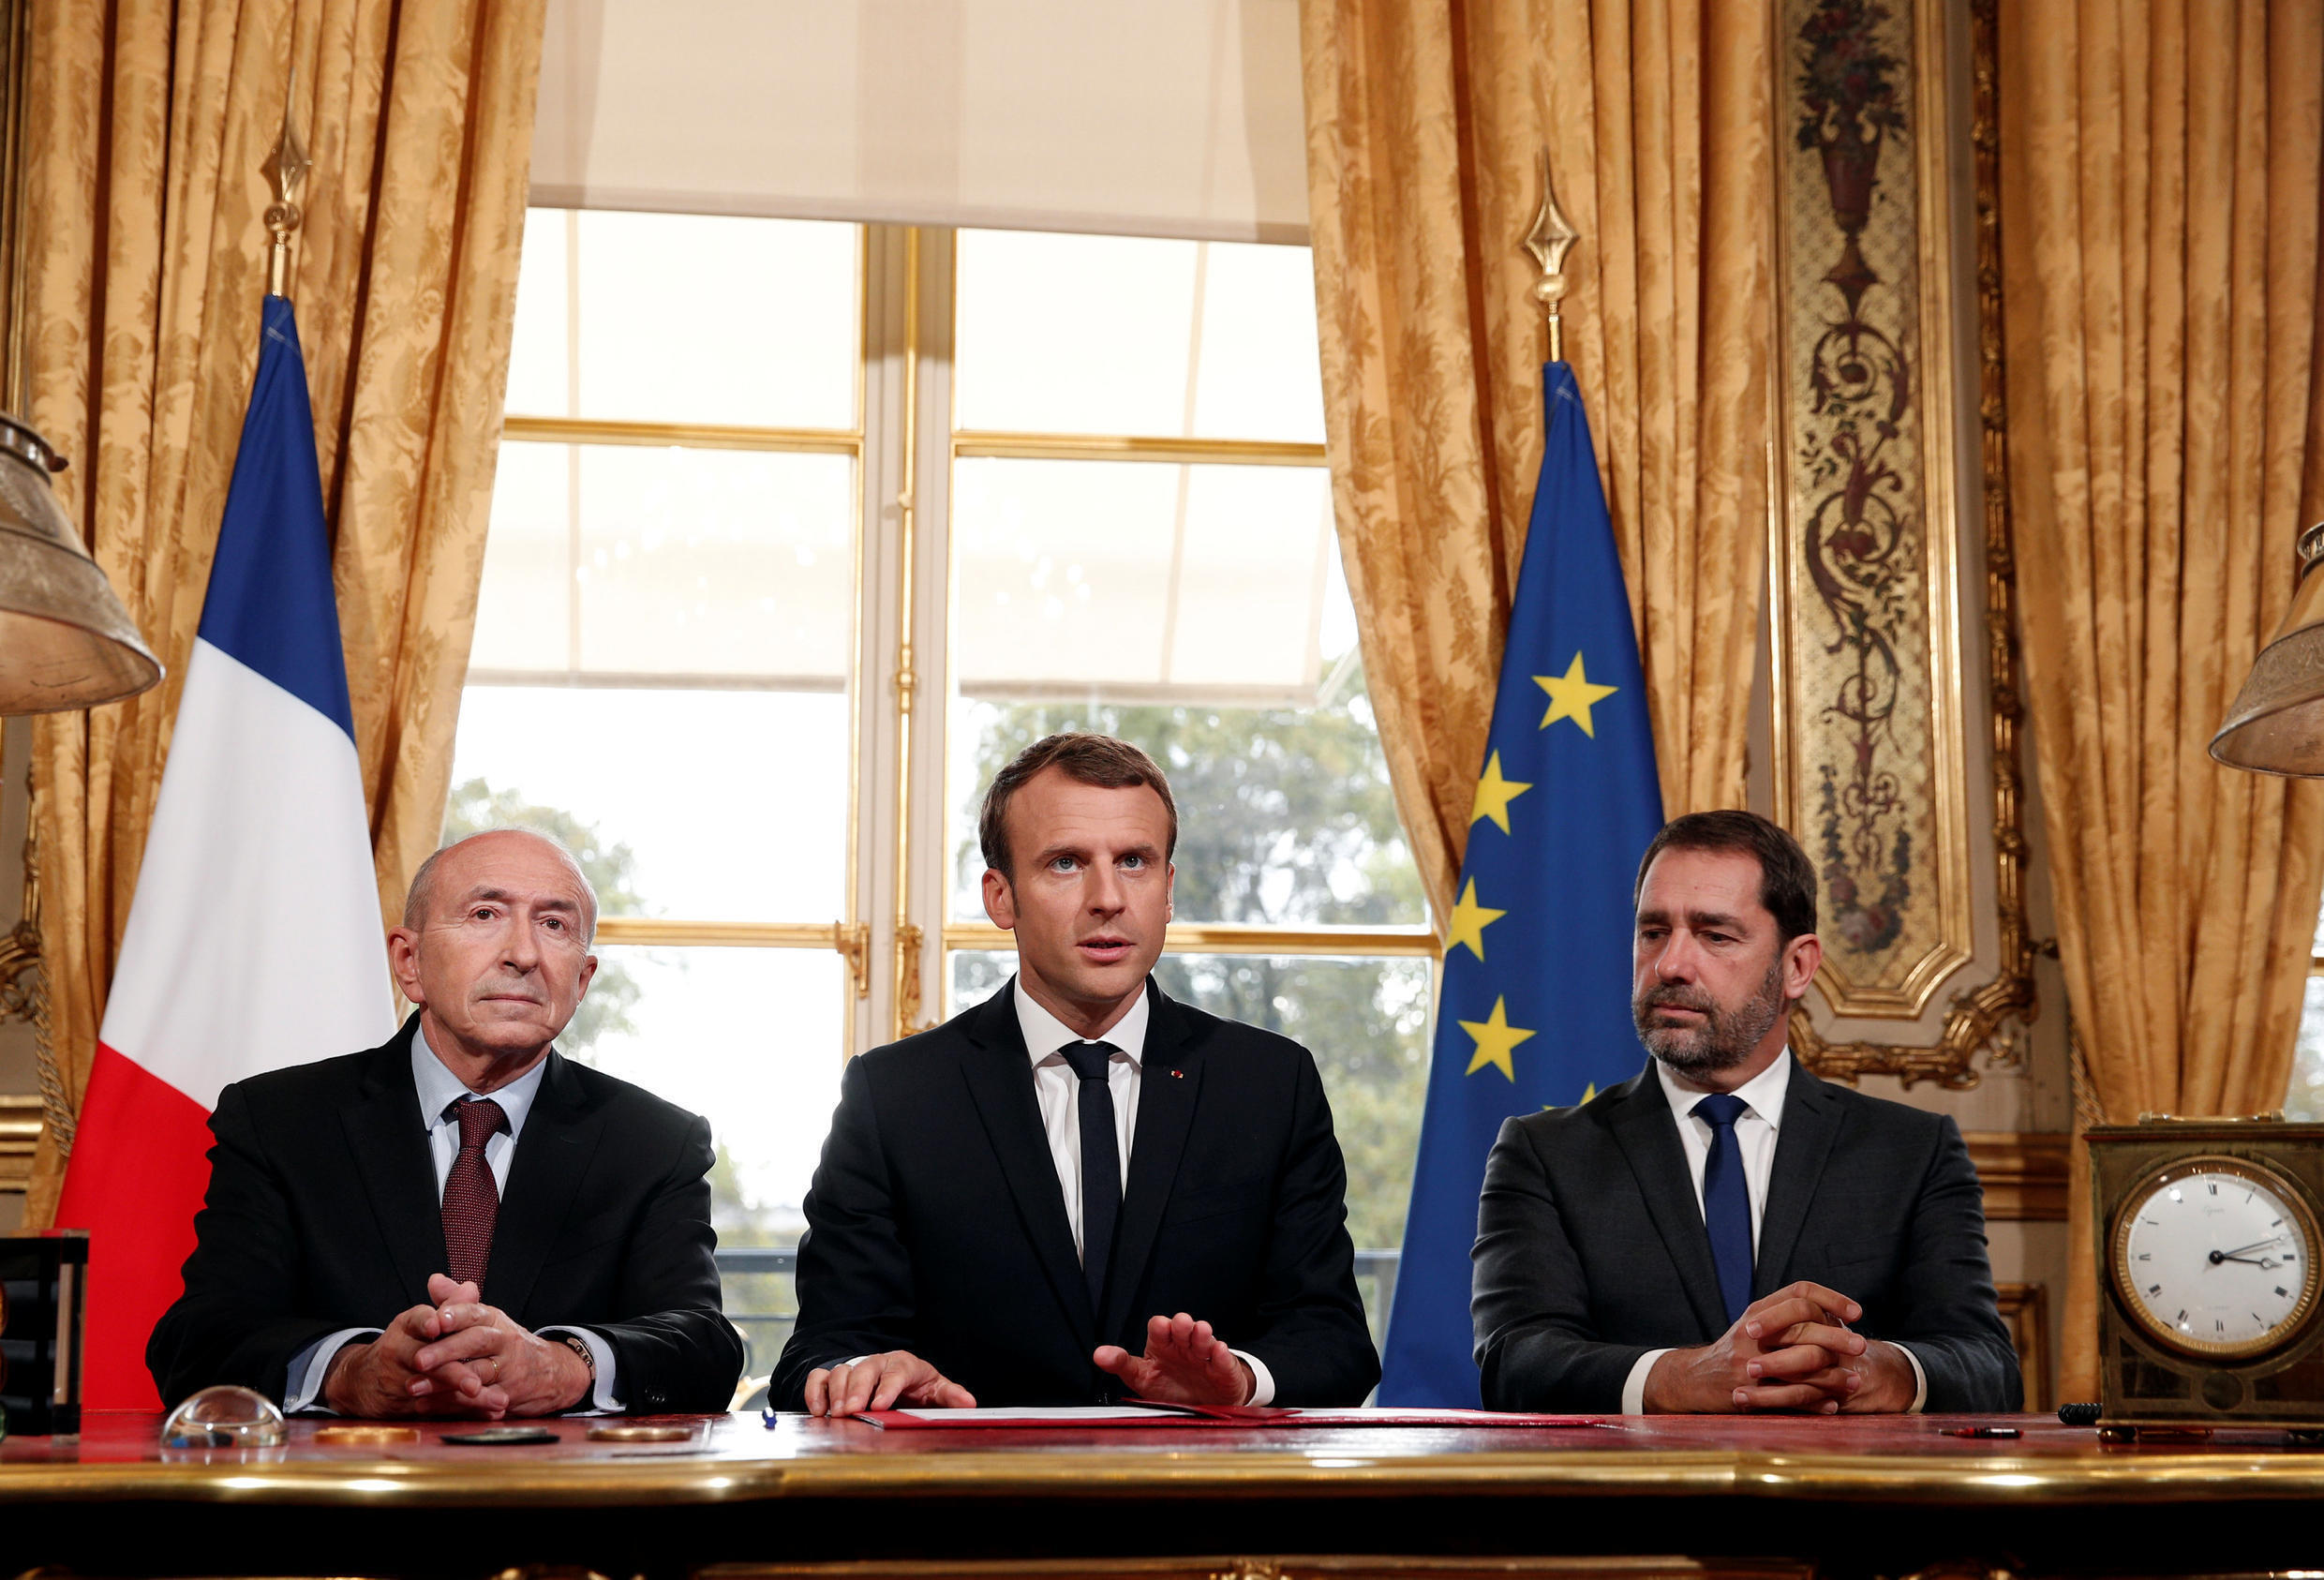 French President Emmnauel Macron (C) addresses the medias with French Interior Minister Gerard Collomb (L) and government spokesman Christophe Castaner after signing a new anti-terrorism and interior security law at the Elysee Palace in Paris, October 30.